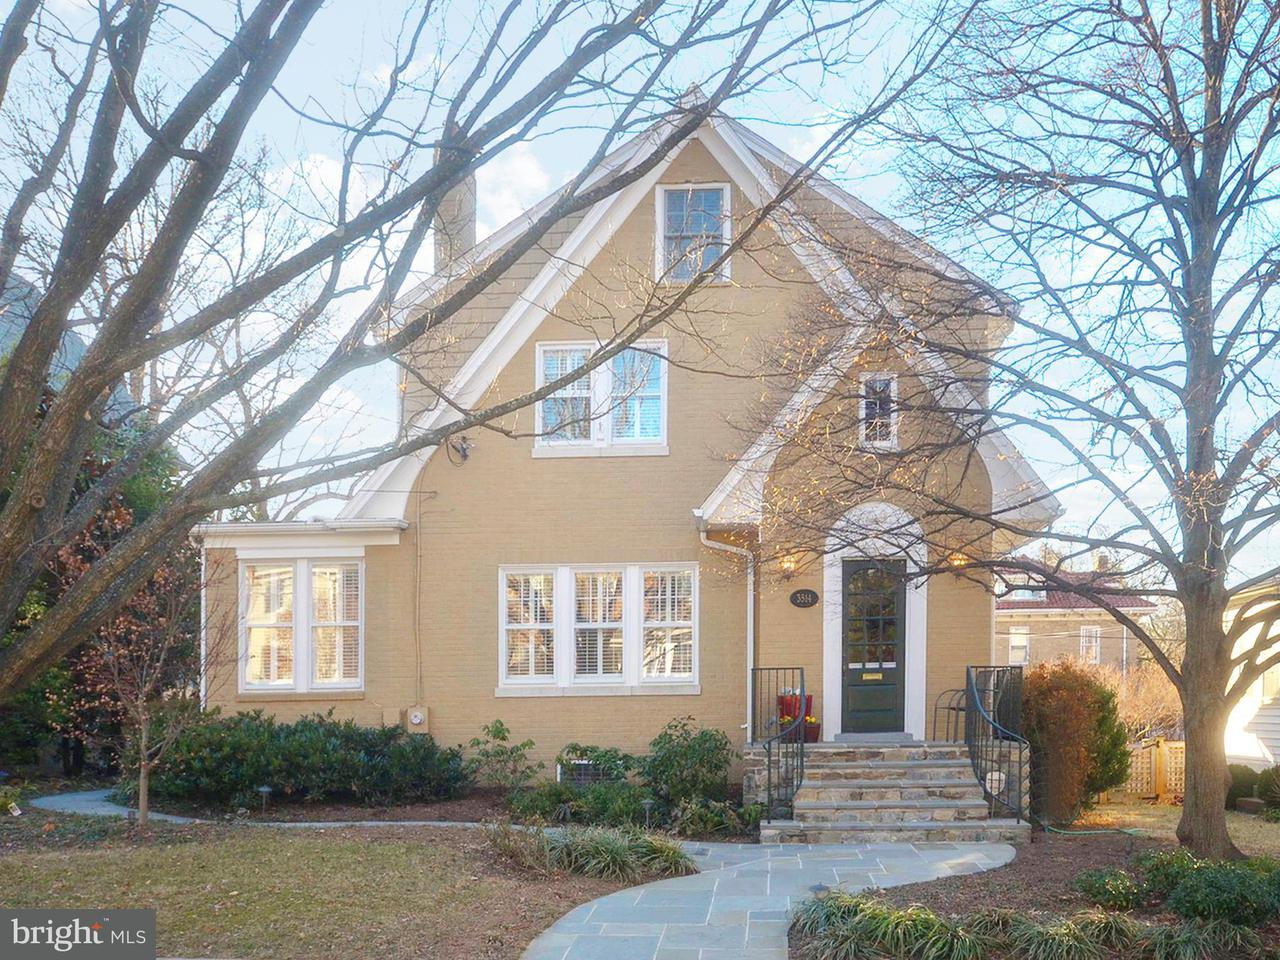 Single Family Home for Sale at 3514 Runnymede Pl Nw 3514 Runnymede Pl Nw Washington, District Of Columbia 20015 United States